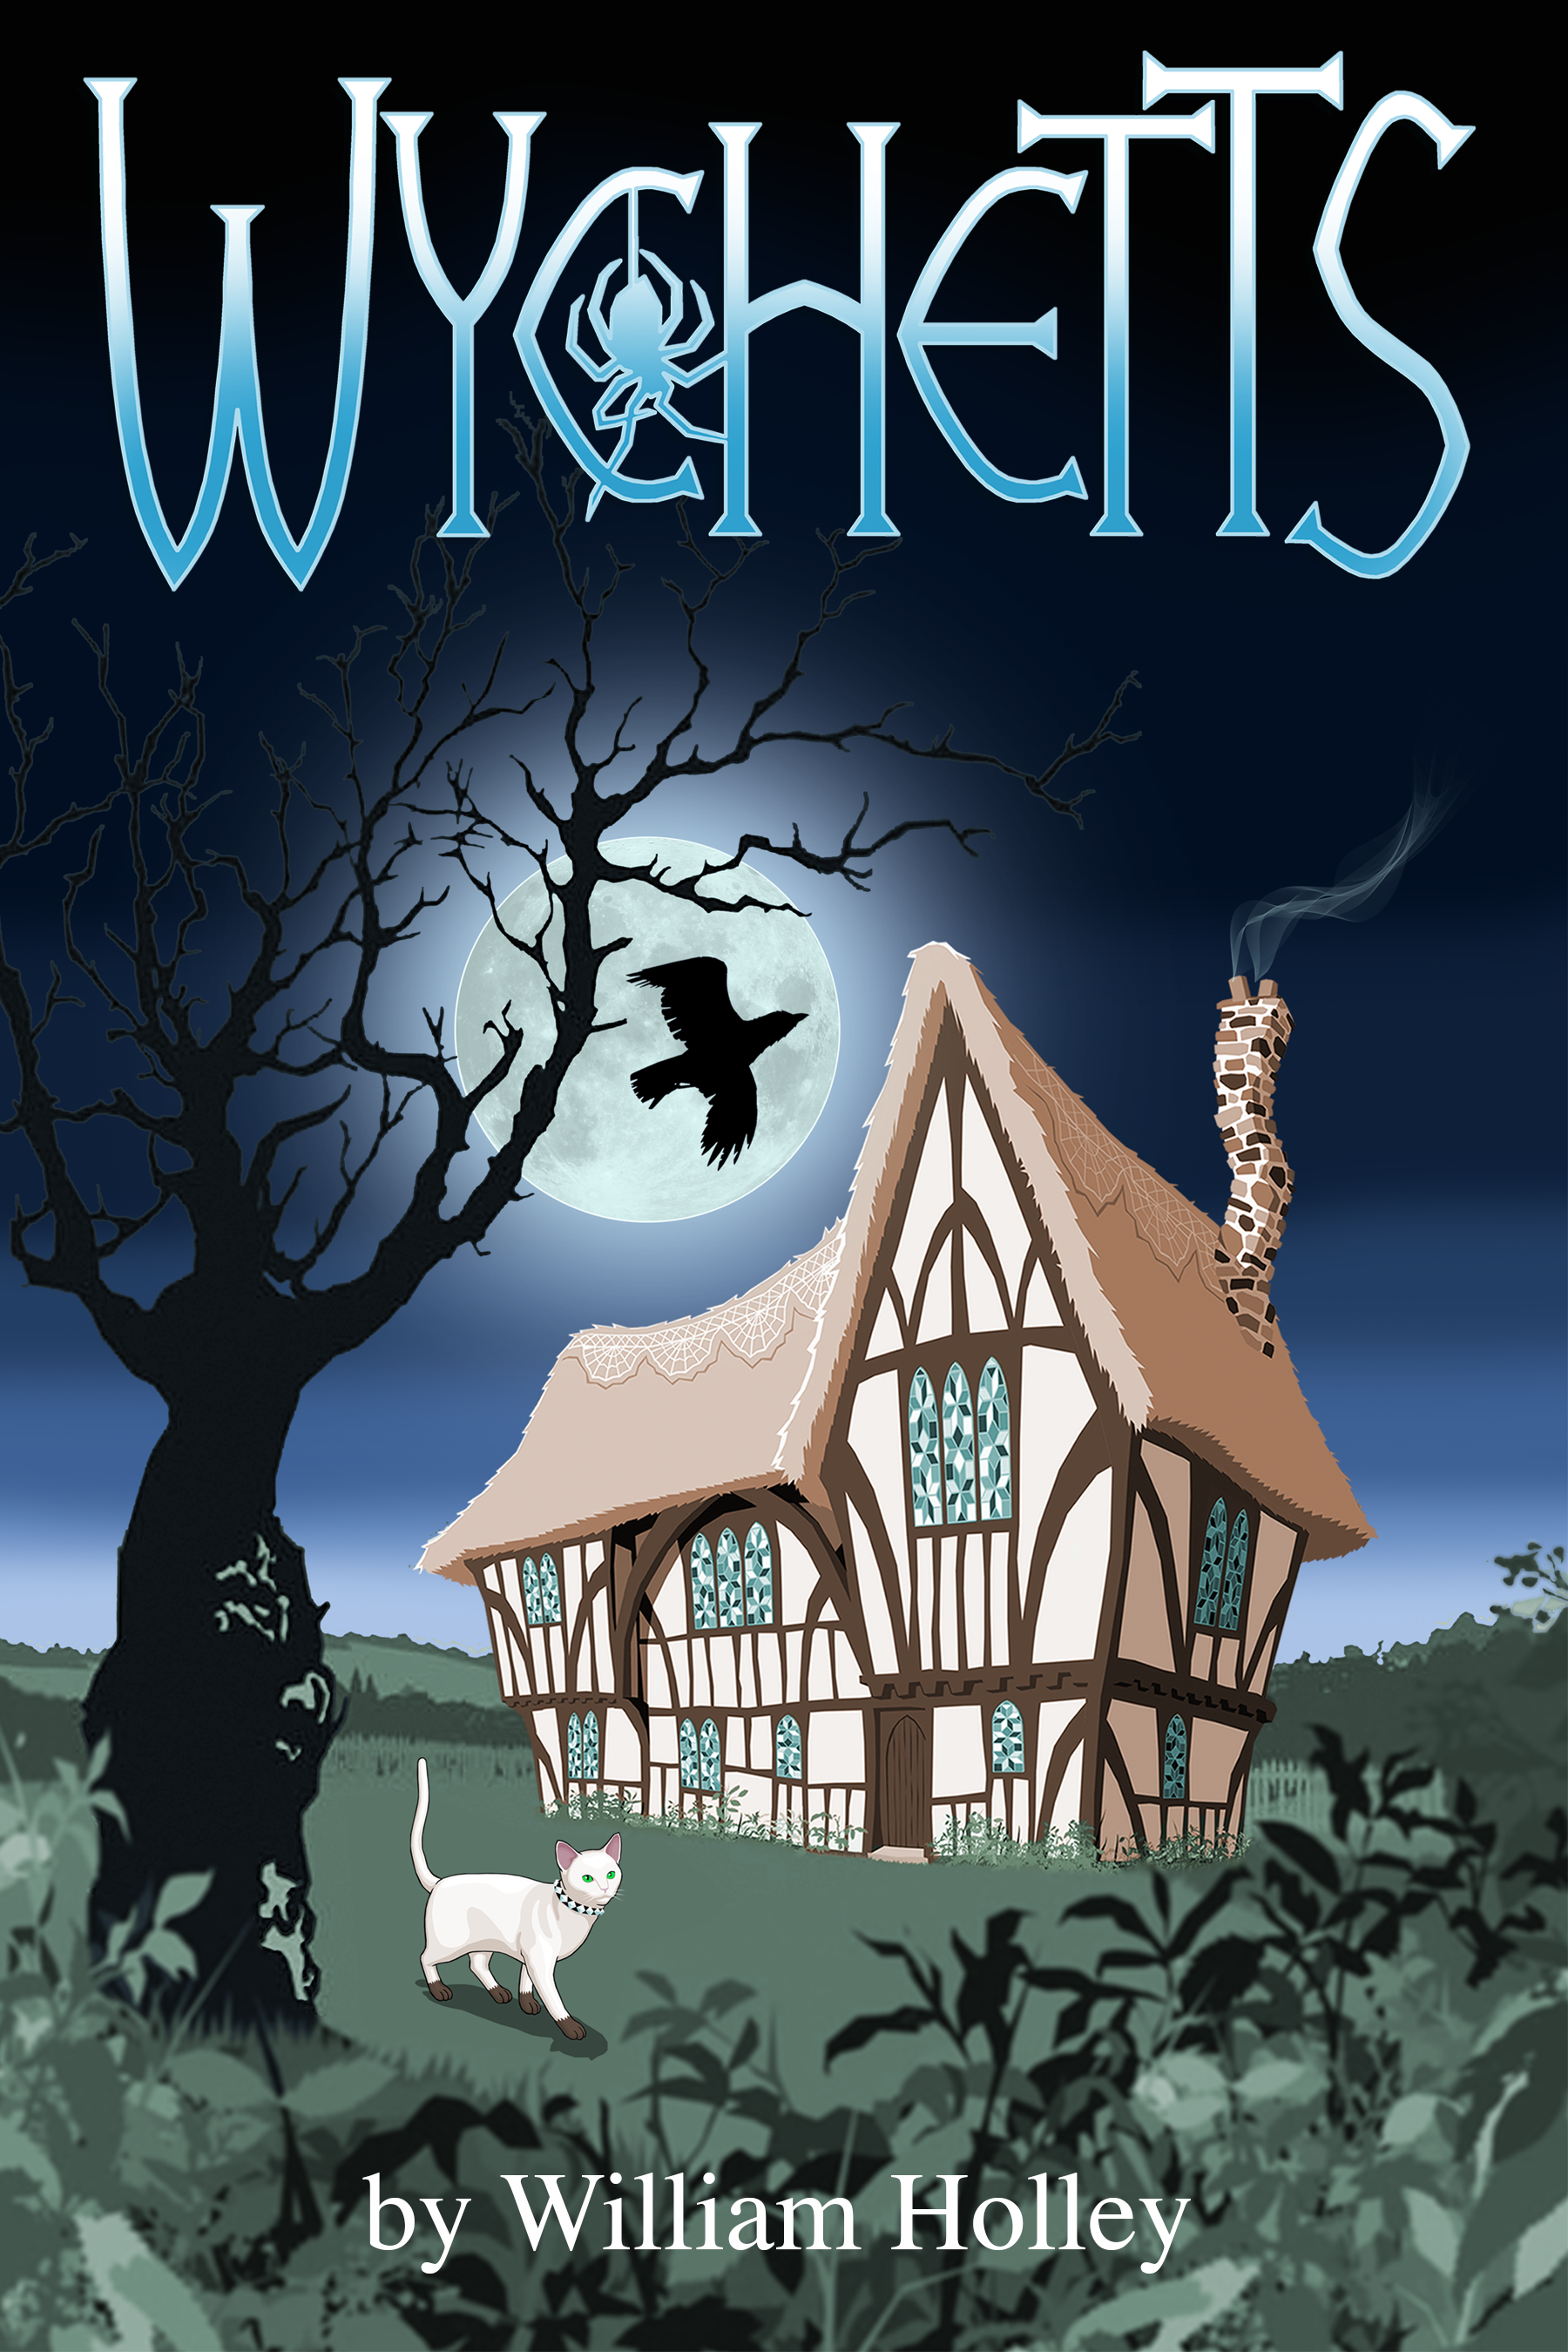 Wychetts, Book 1